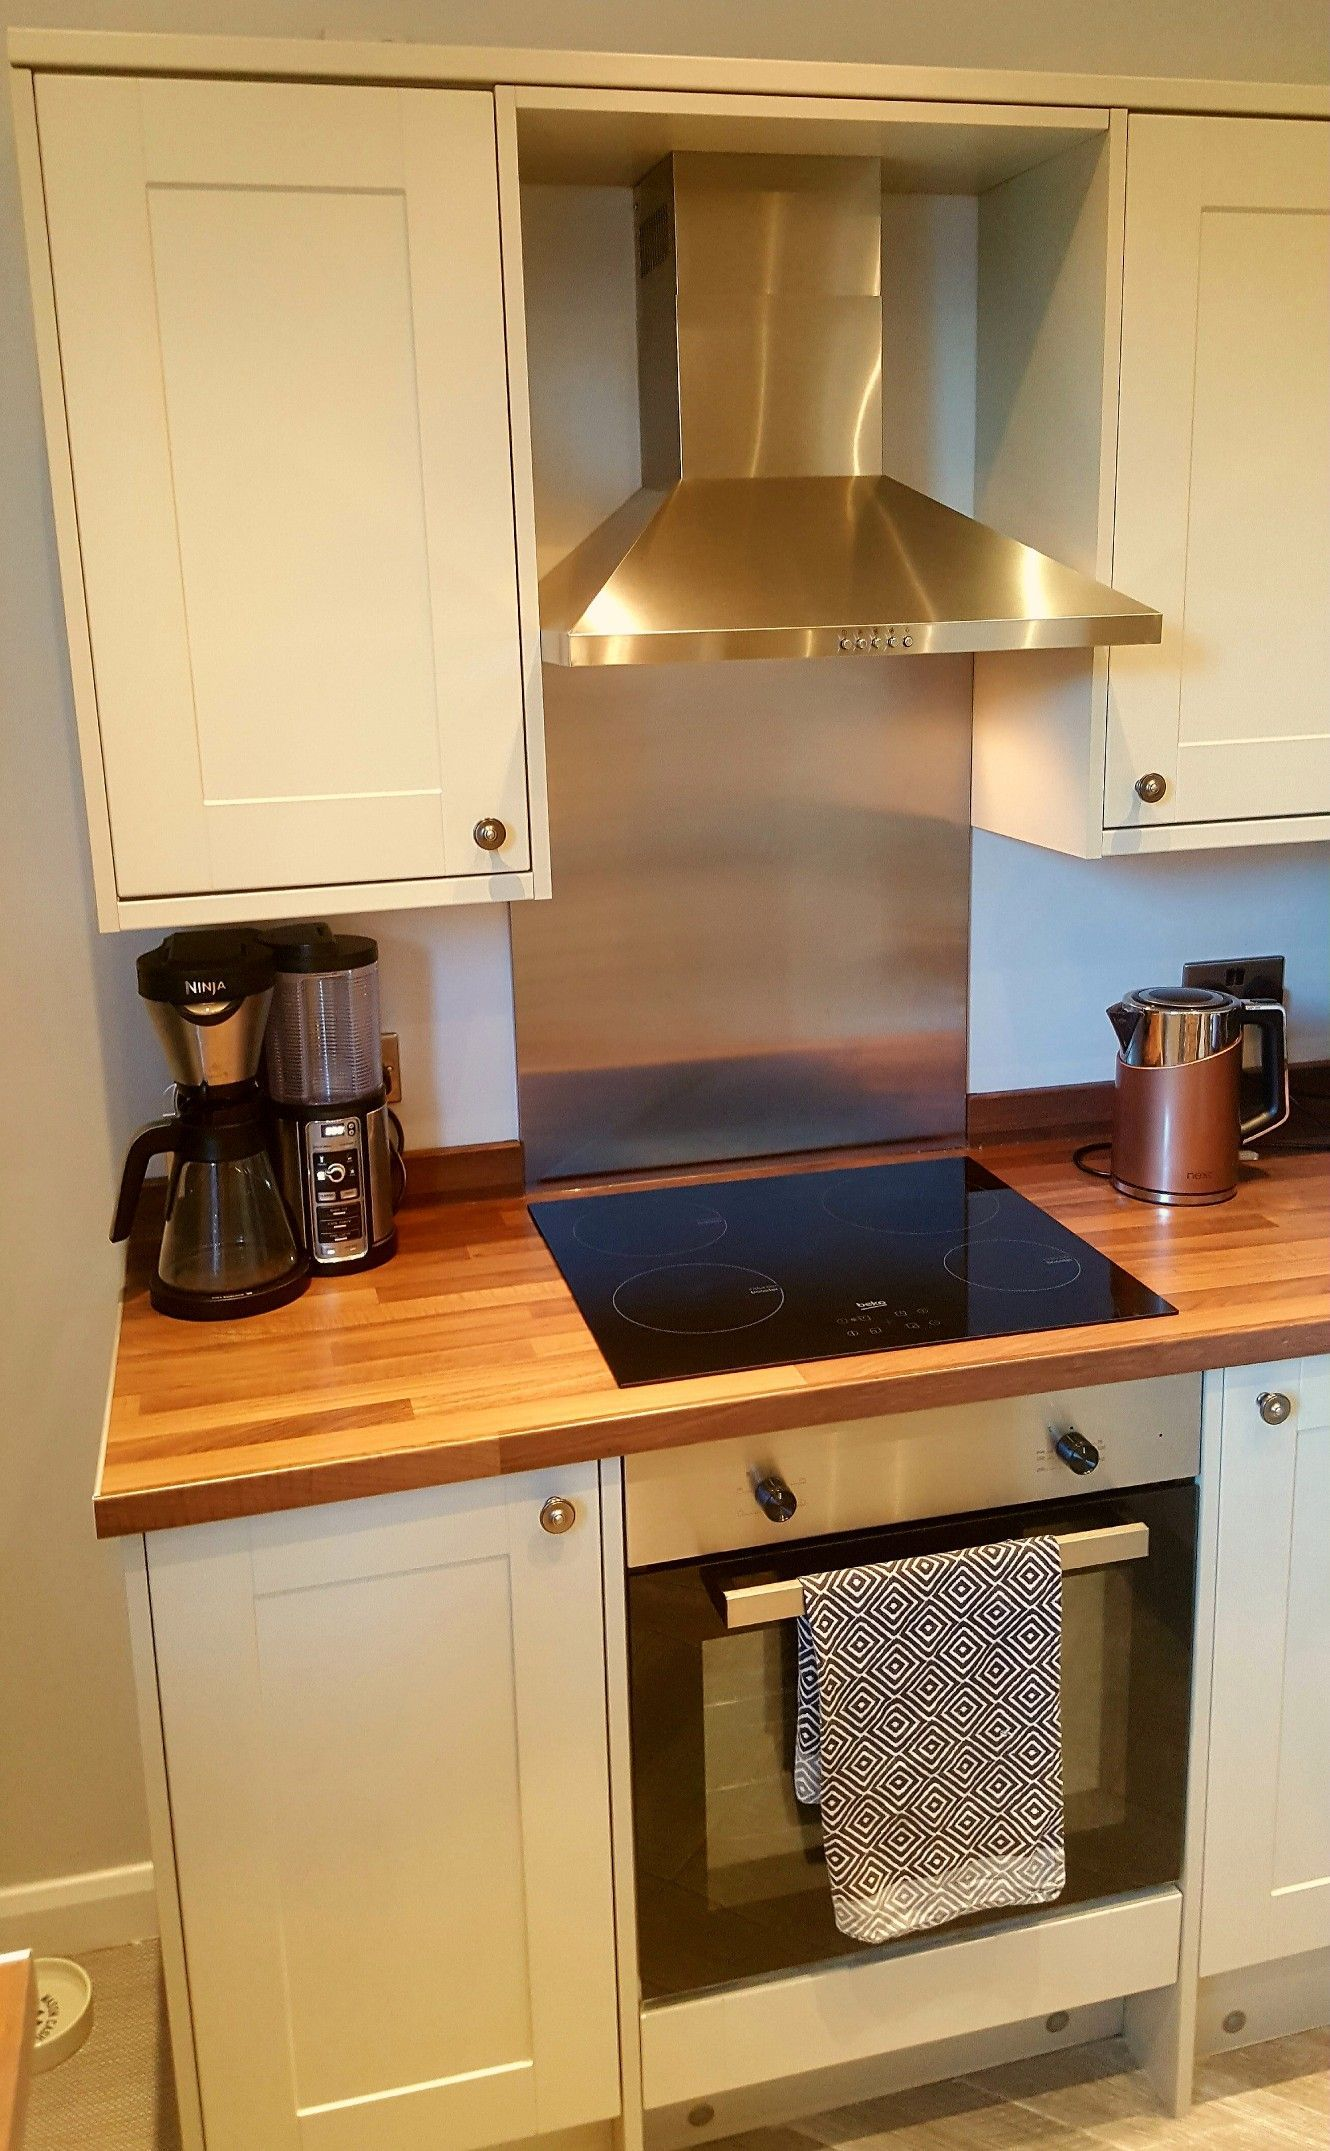 Town house kitchen design styling by My Pretties UK